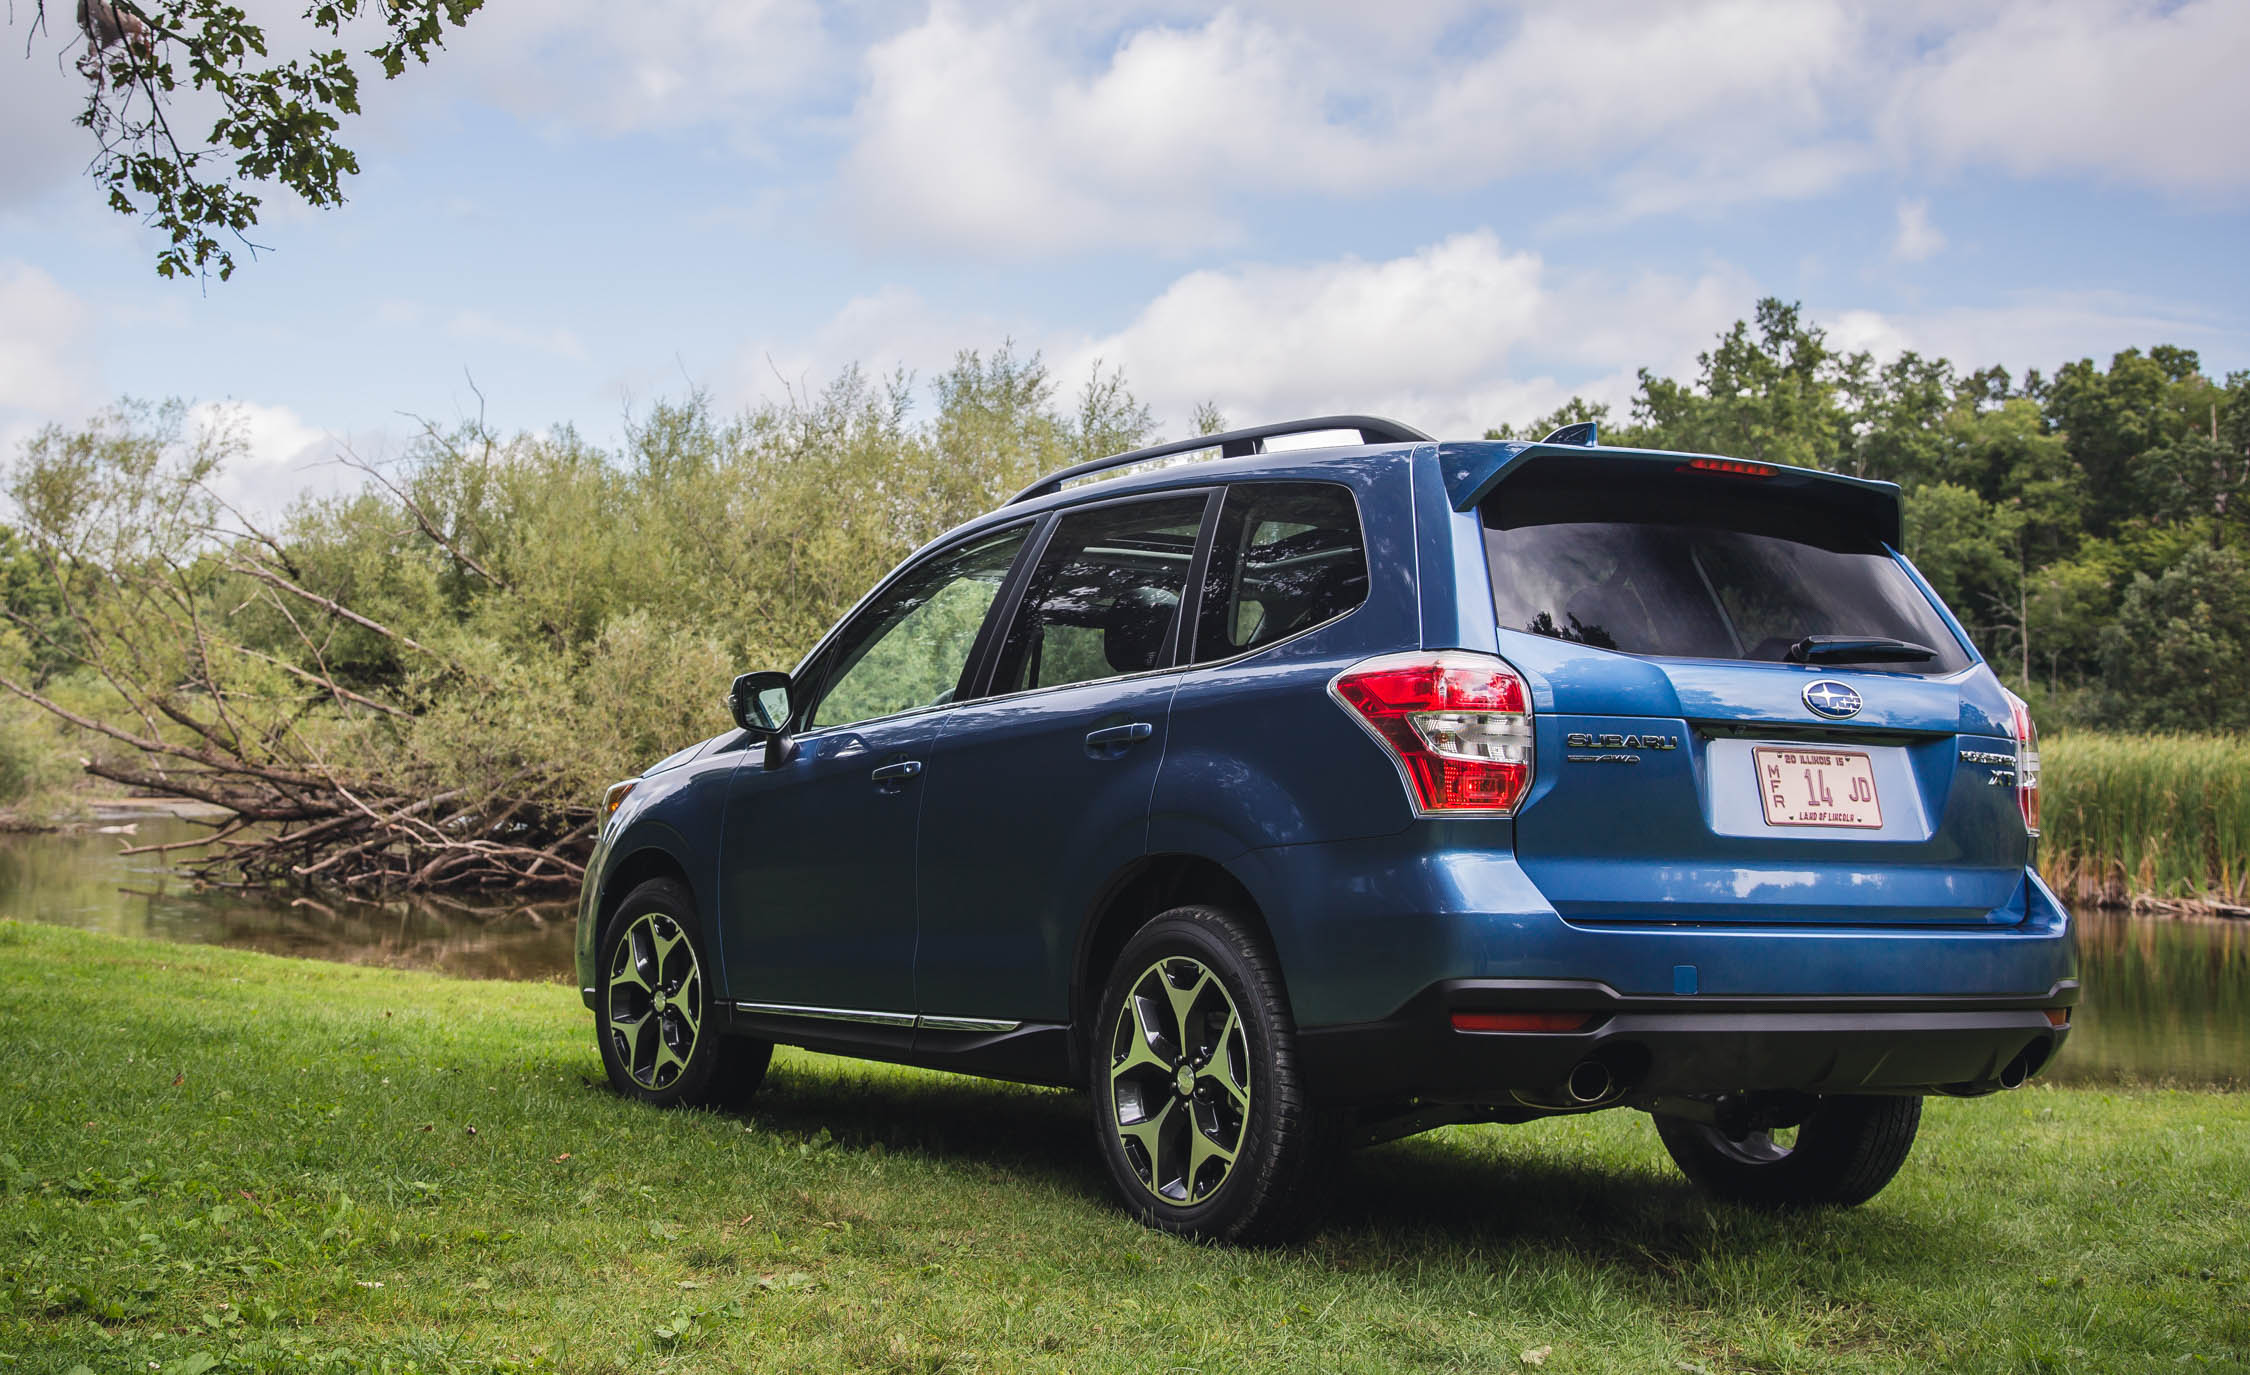 2016 Subaru Forester 2 0xt Touring Exterior Full Rear And Side (View 26 of 29)